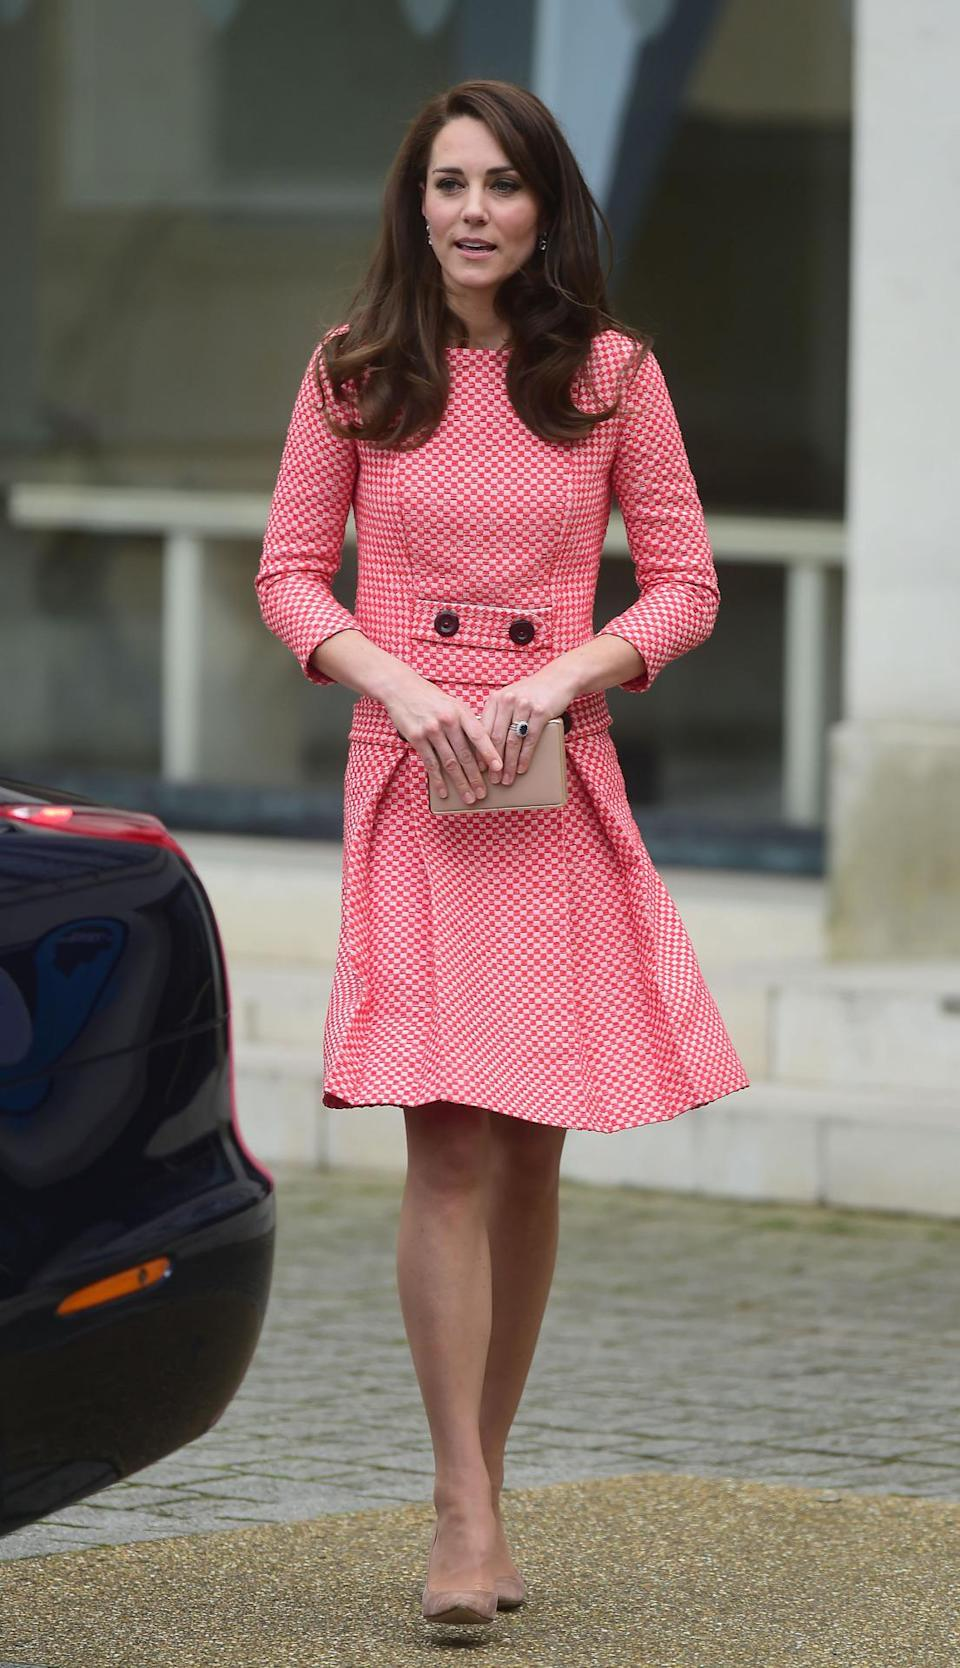 <p>For a charity visit to raise awareness of maternal mental health, Kate opted to re-wear a red skirt suit by Eponine London. The vintage style was first seen on the Duchess in March 2016 and features a box pleat skirt and 1960s detailing. She topped off the look with her favourite suede Gianvito Rossi heels and a nude box clutch by LK Bennett. </p><p><i>[Photo: PA]</i></p>